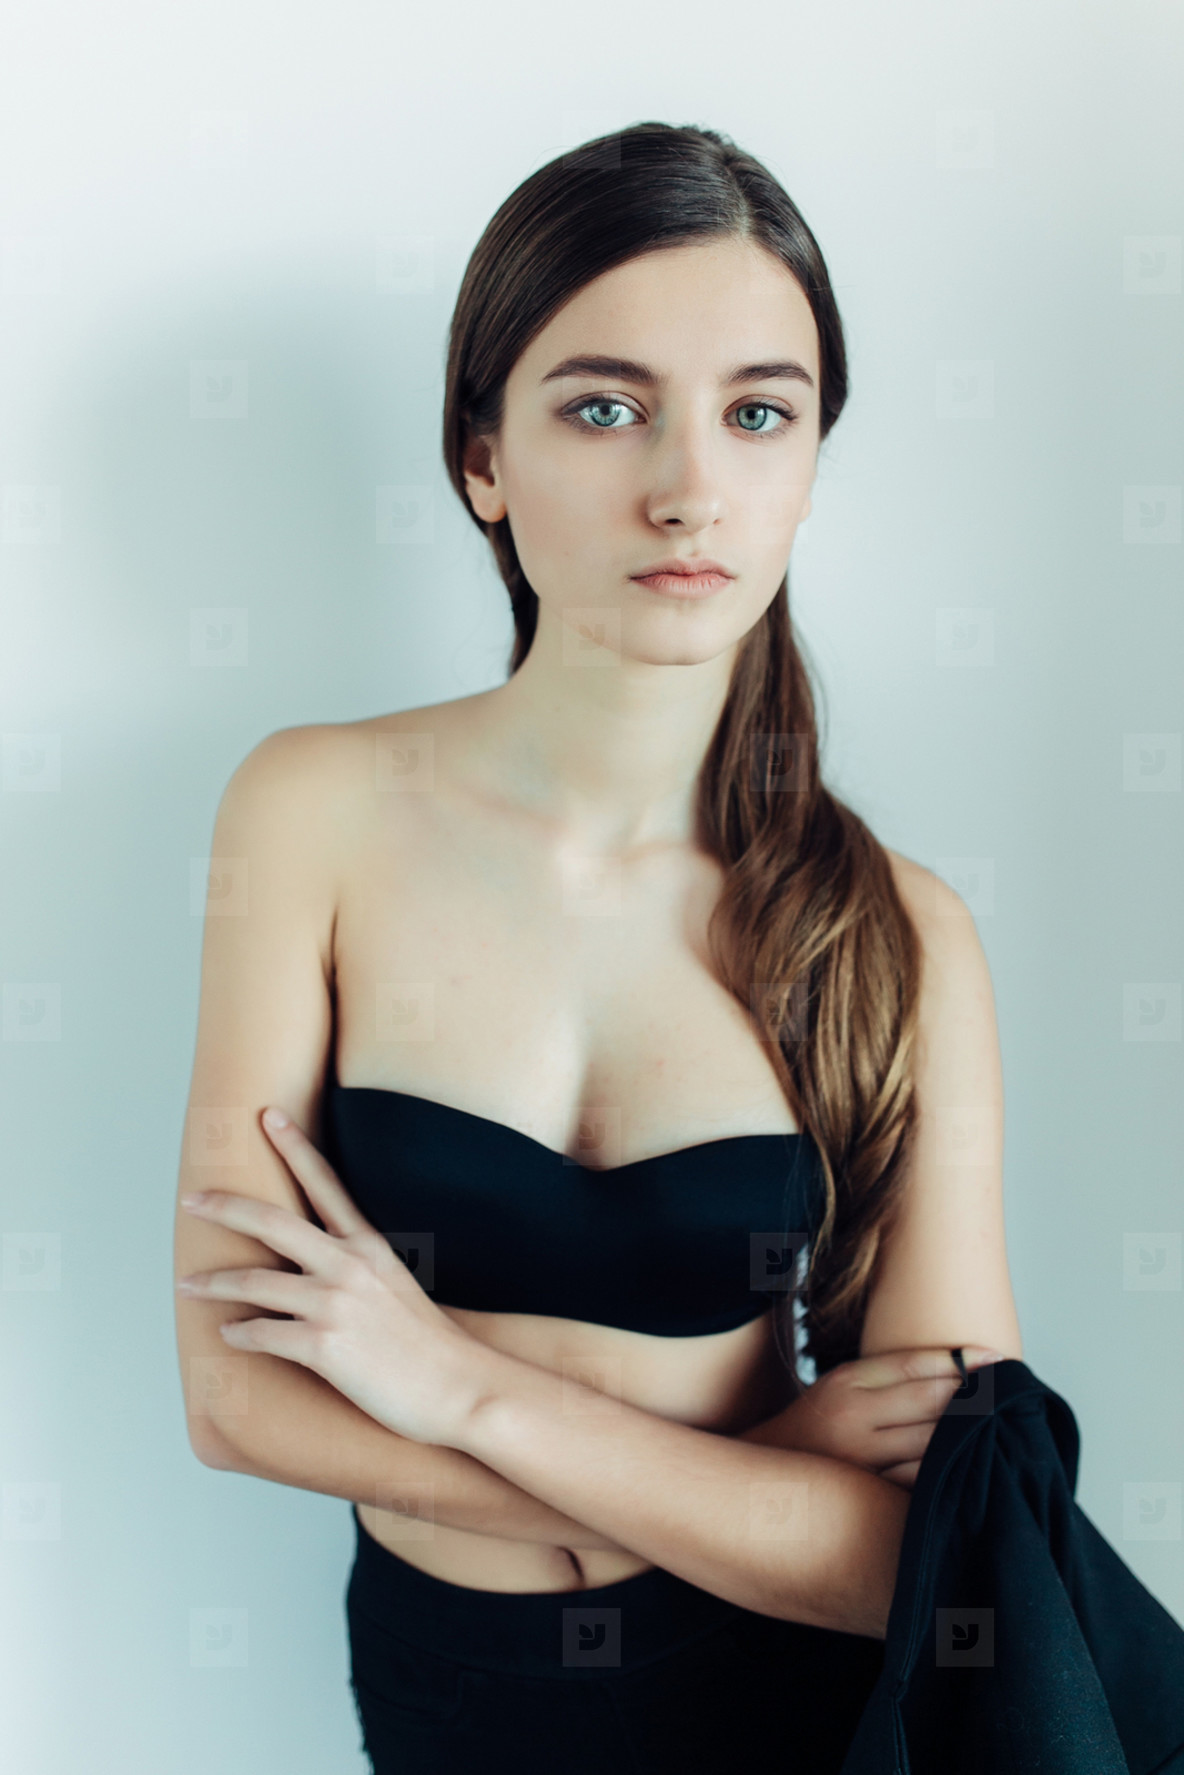 young girl in a black dress